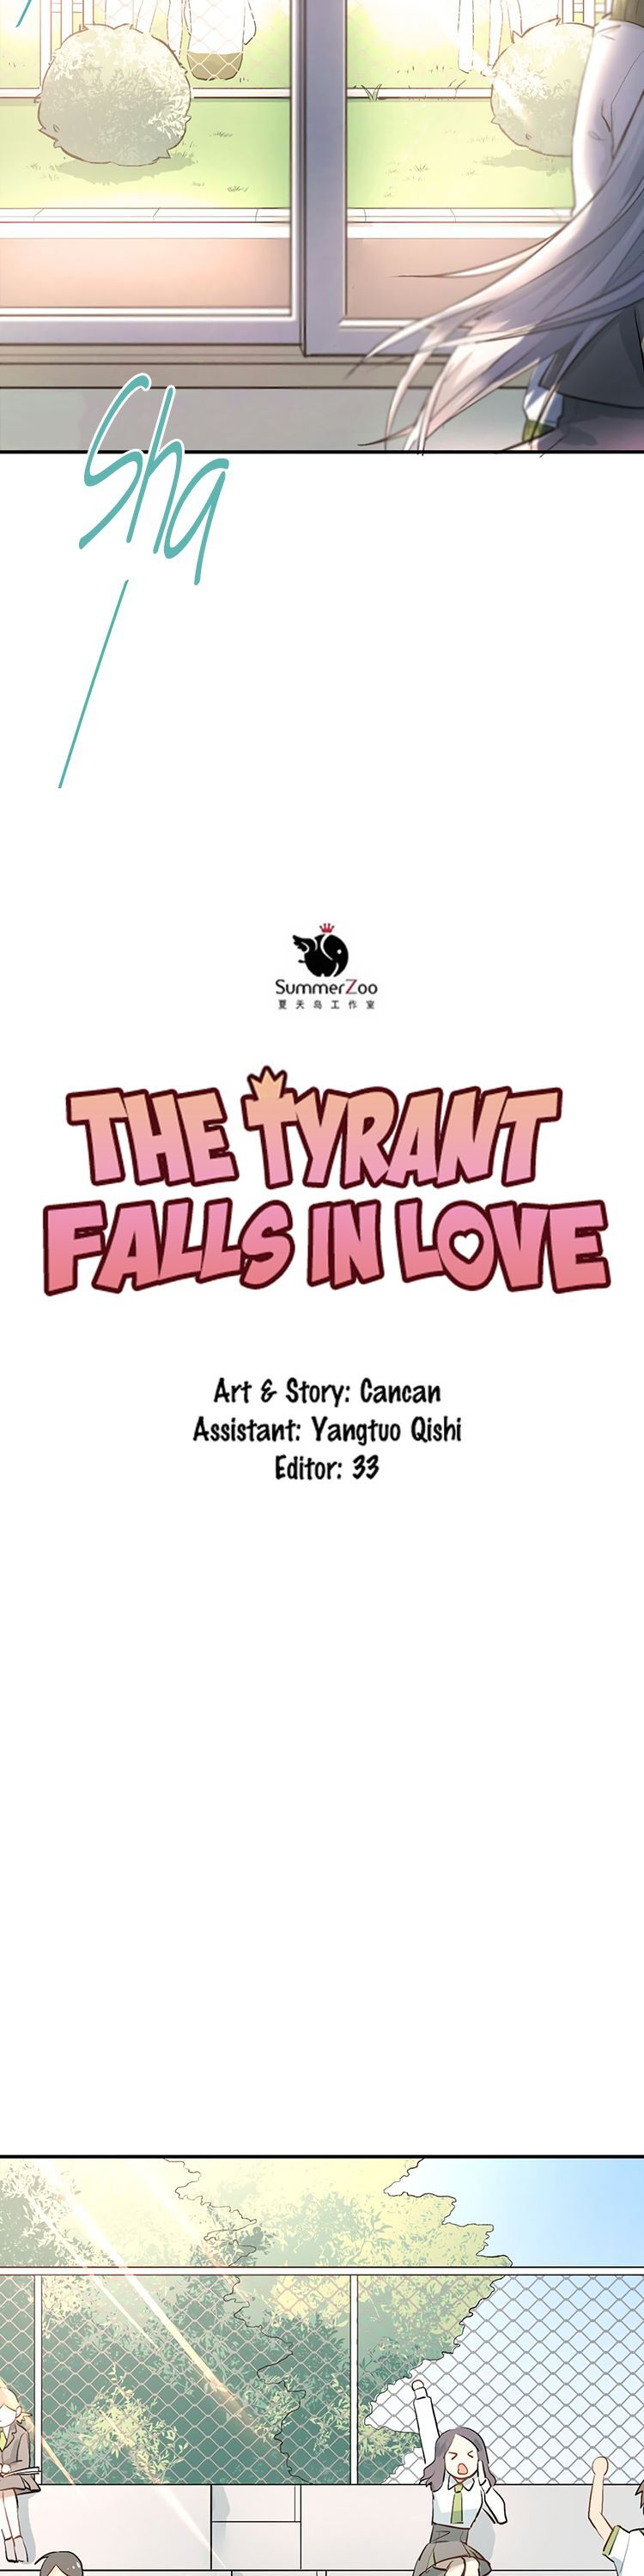 The Tyrant Falls in Love (Can Can) 12 Page 5